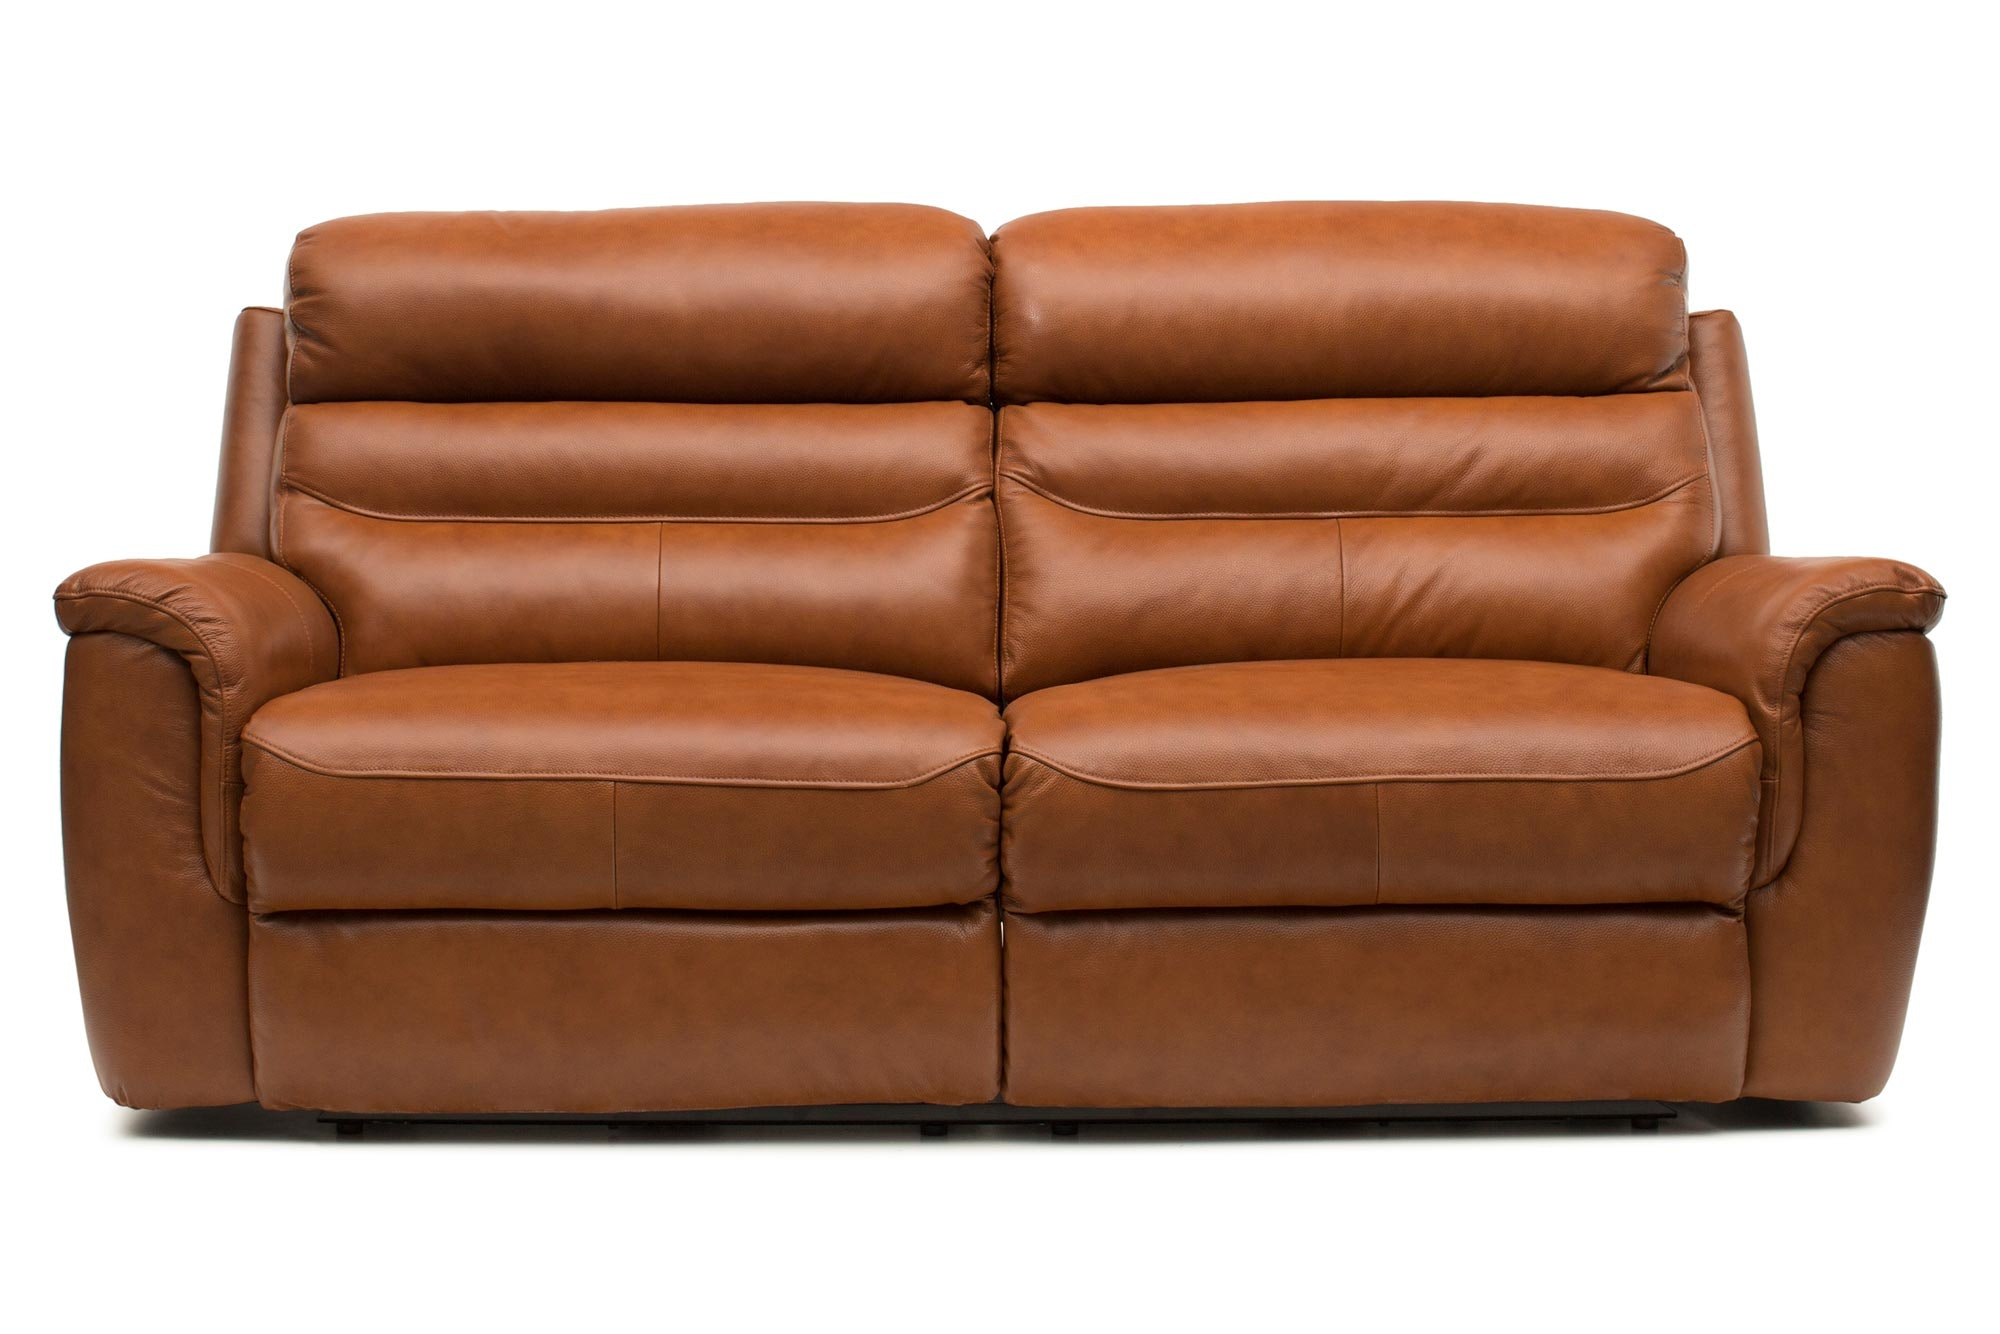 Bayle 3 Seater Recliner | Manual | Leather